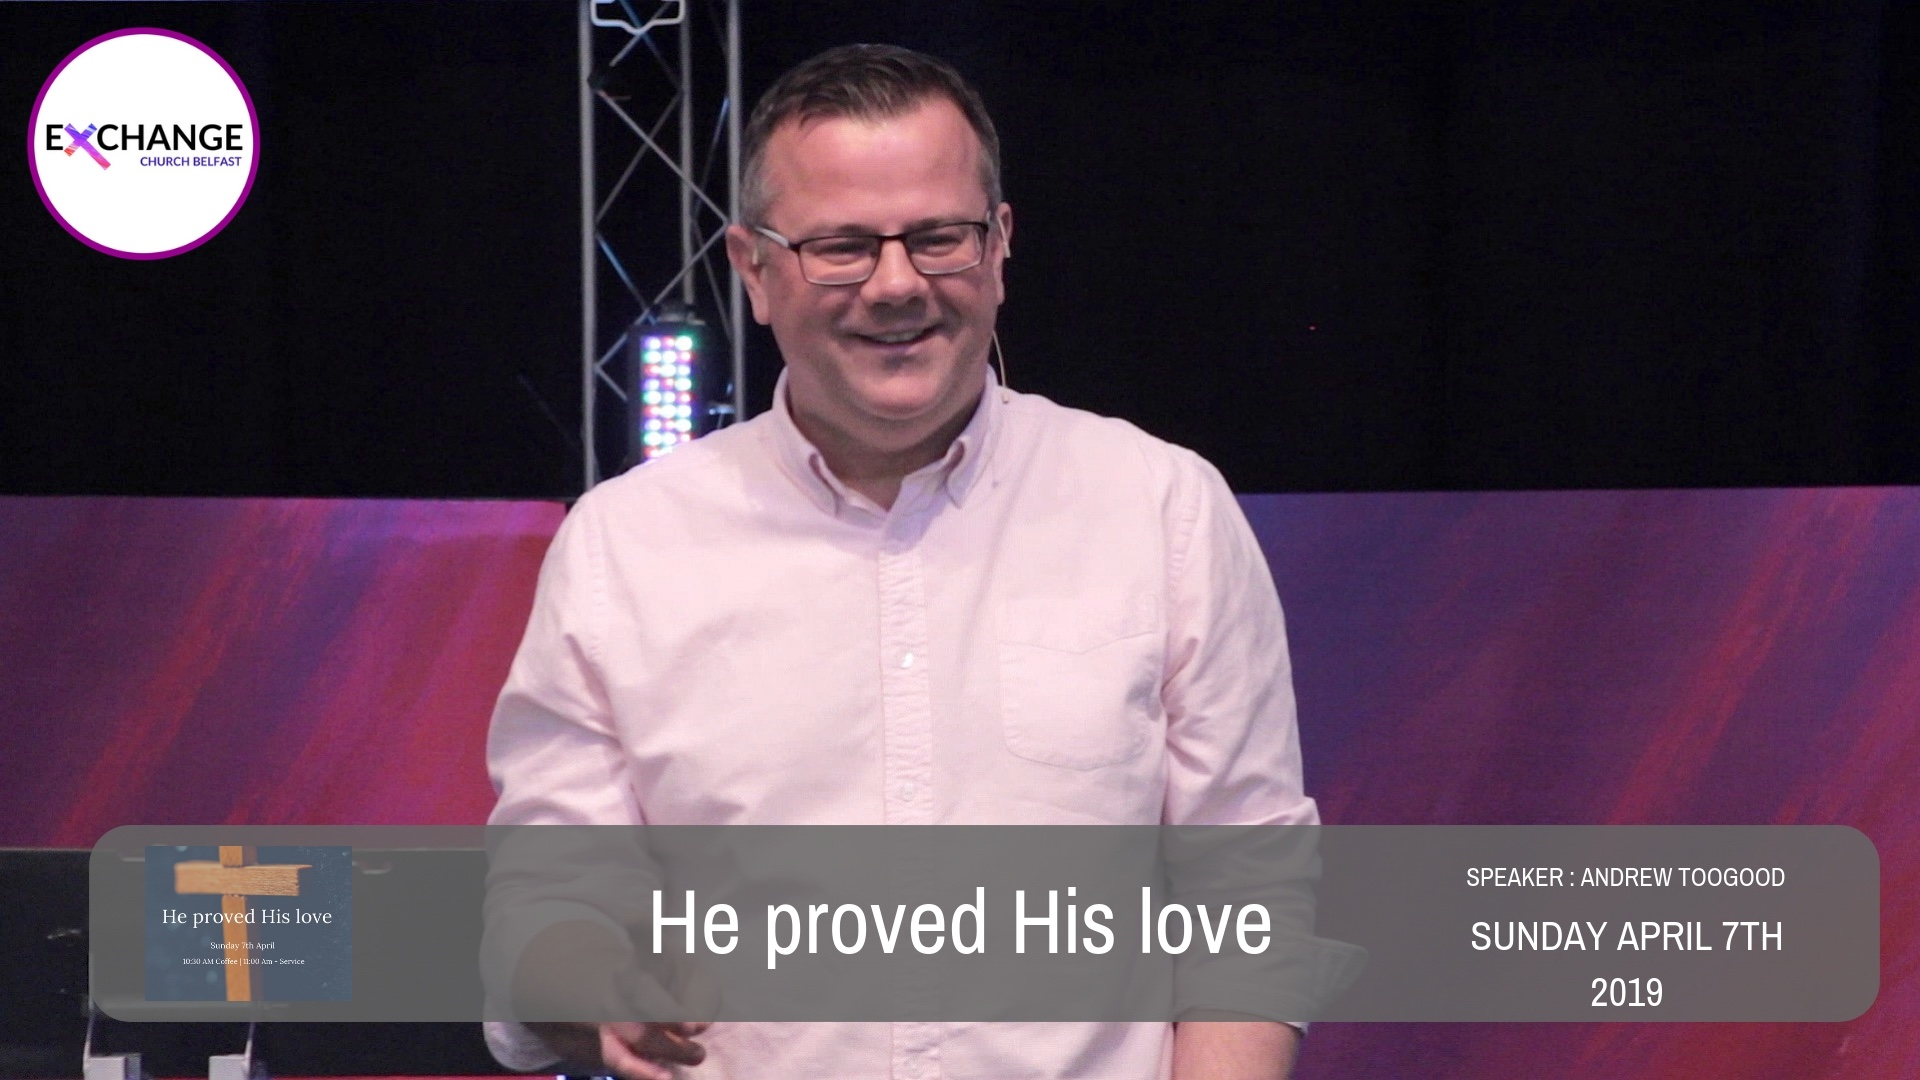 He proved His love